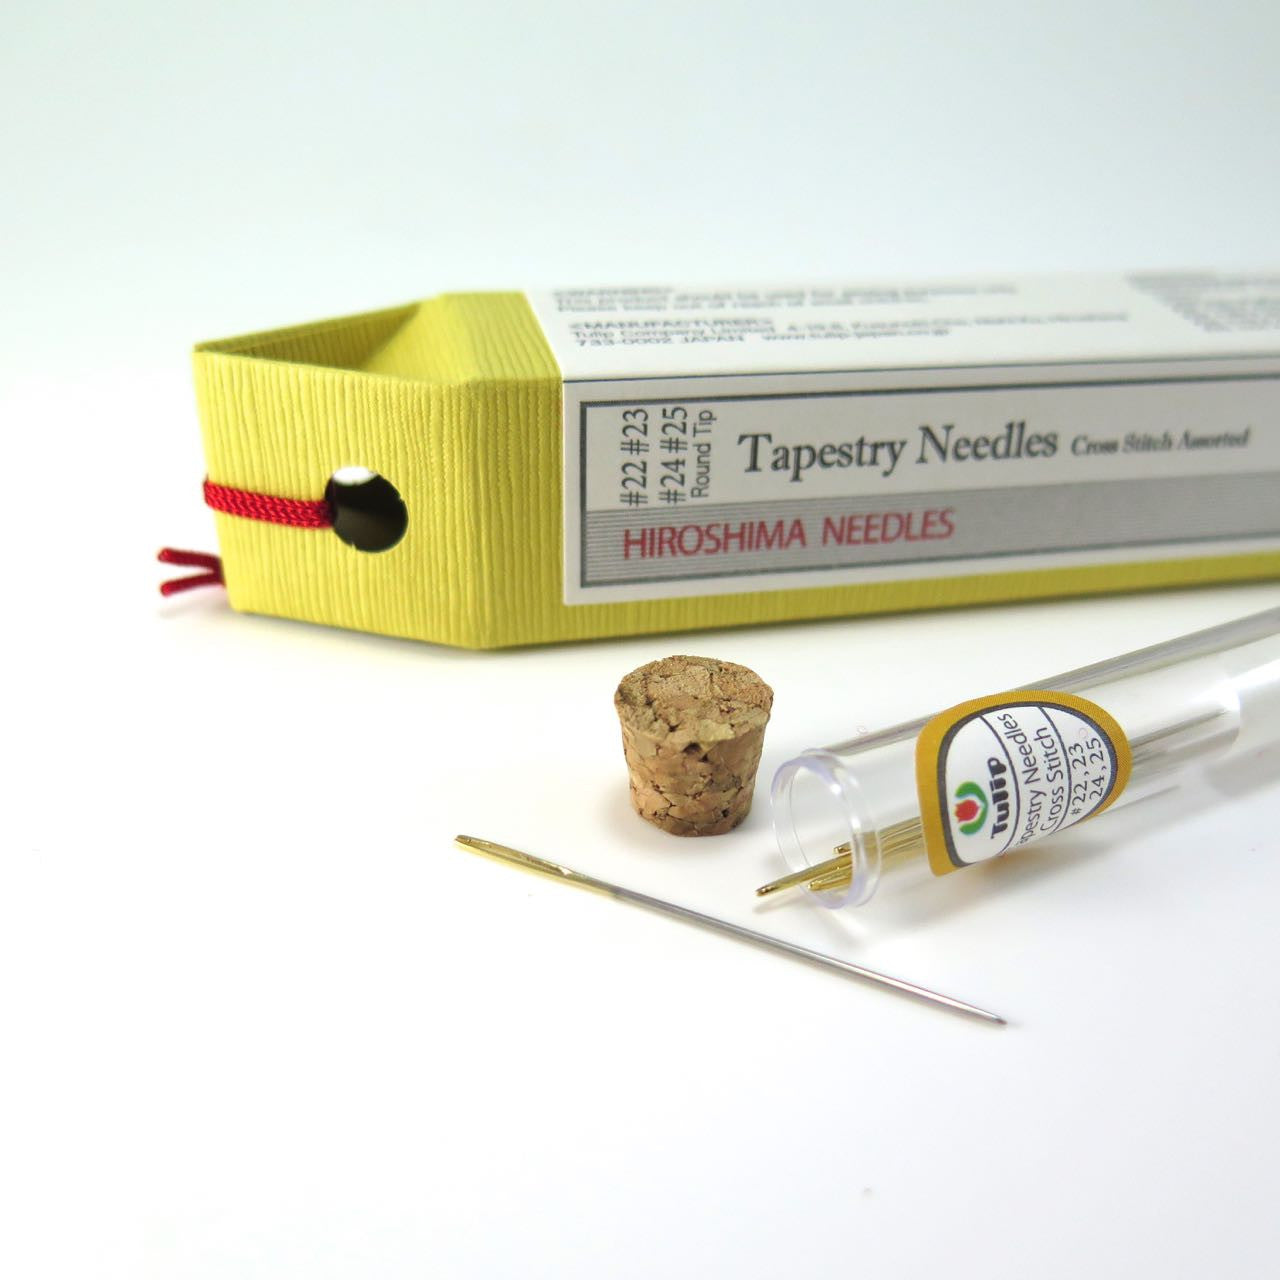 Tulip Hiroshima Cross Stitch Needles - Tapestry Needles Needles - Snuggly Monkey